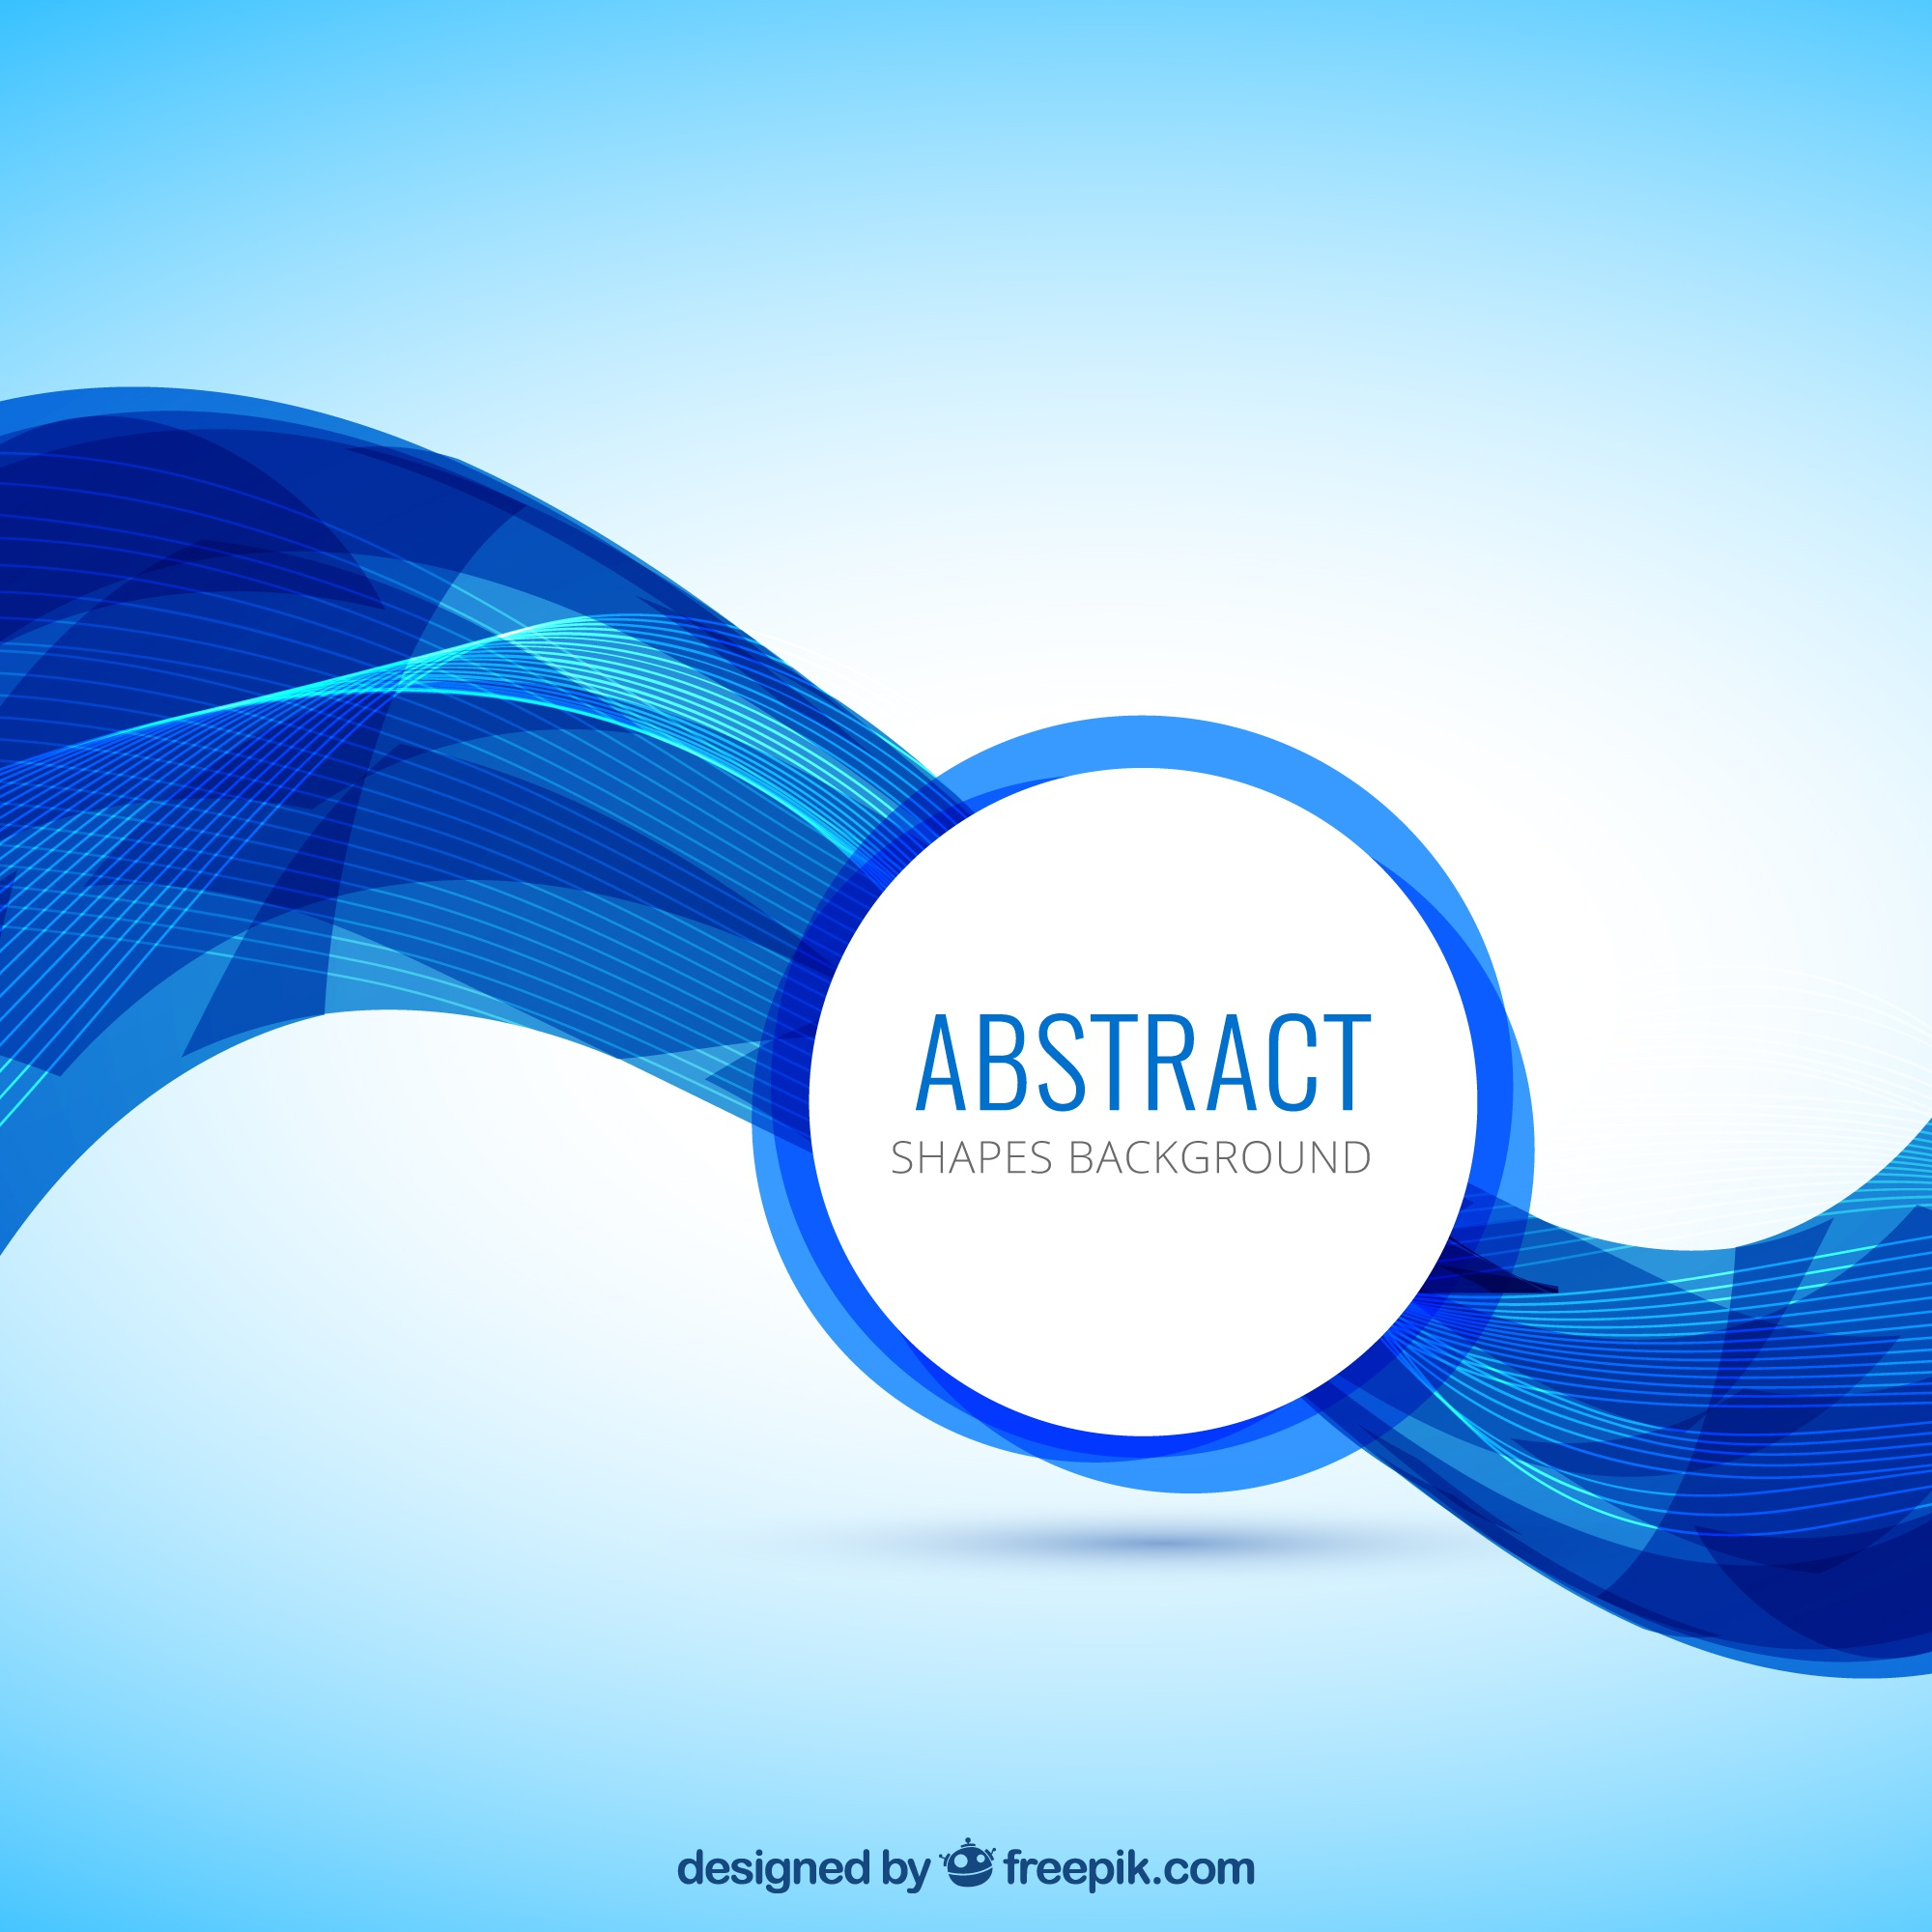 Abstract wave background in blue colors